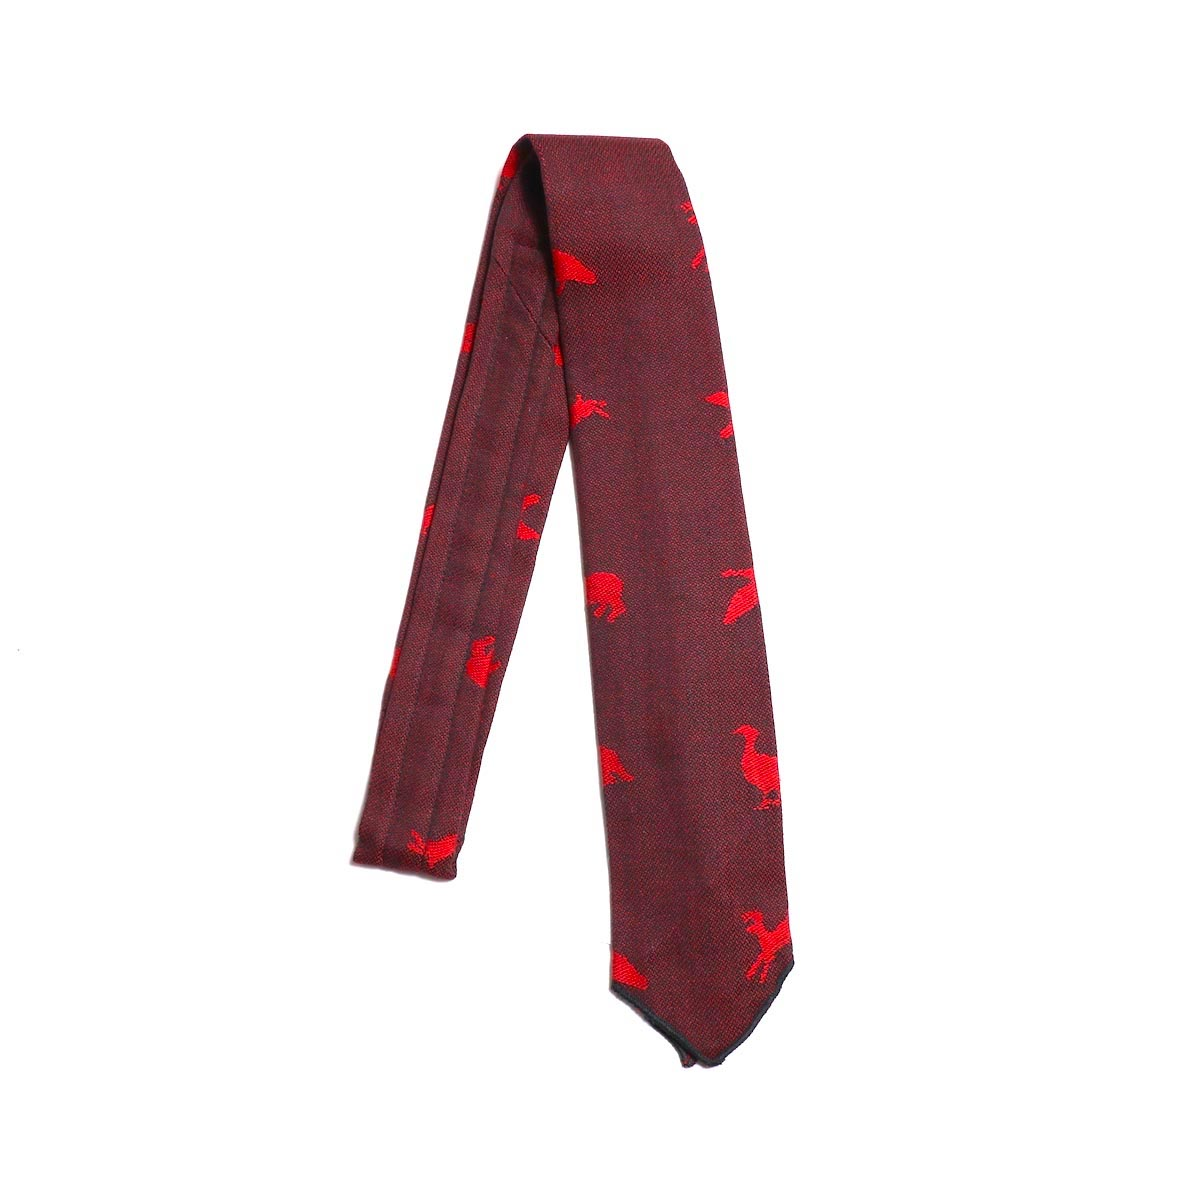 ENGINEERED GARMENTS / Neck Tie Game Animal Jacquard -RED/BLACK